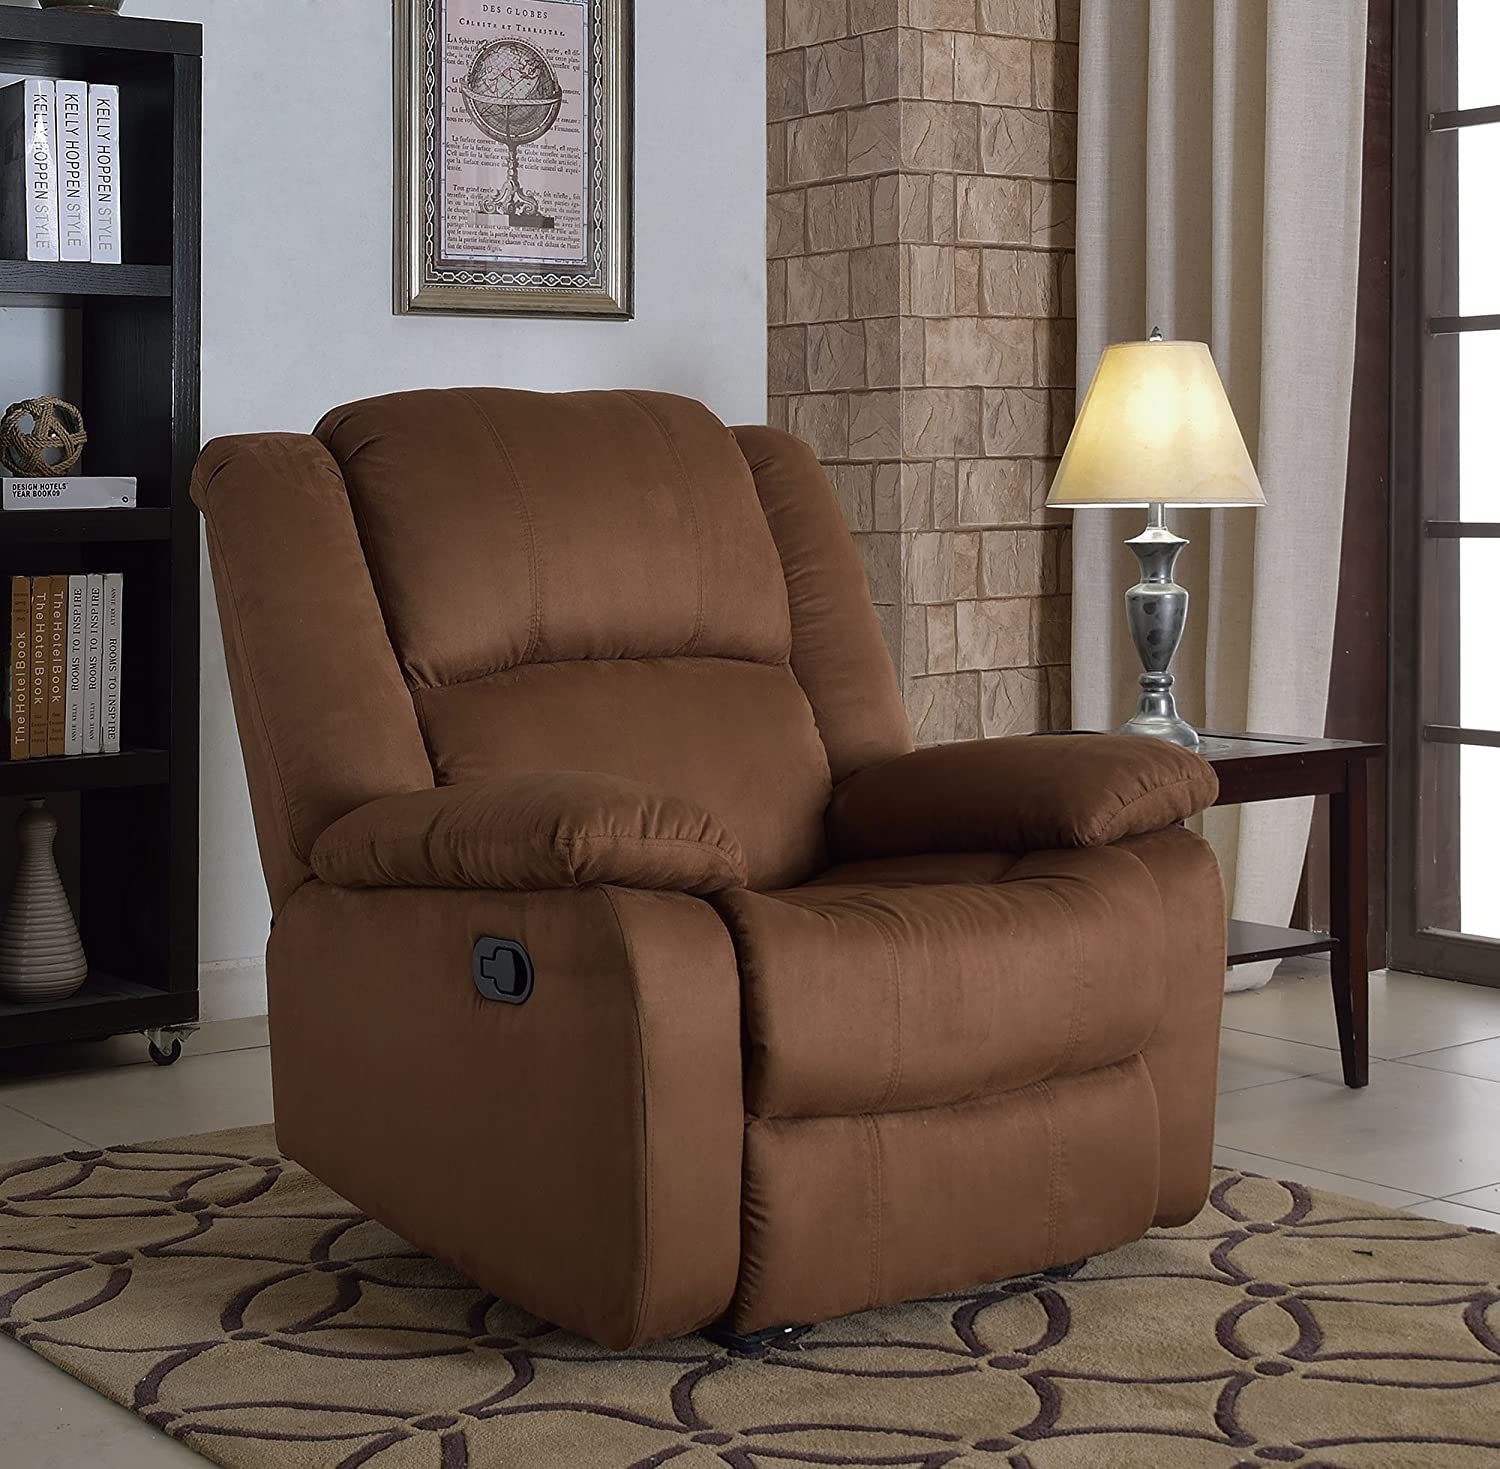 Amazon.com NHI Express Samantha Microfiber Recliner Brown Kitchen u0026 Dining & Amazon.com: NHI Express Samantha Microfiber Recliner Brown ... islam-shia.org